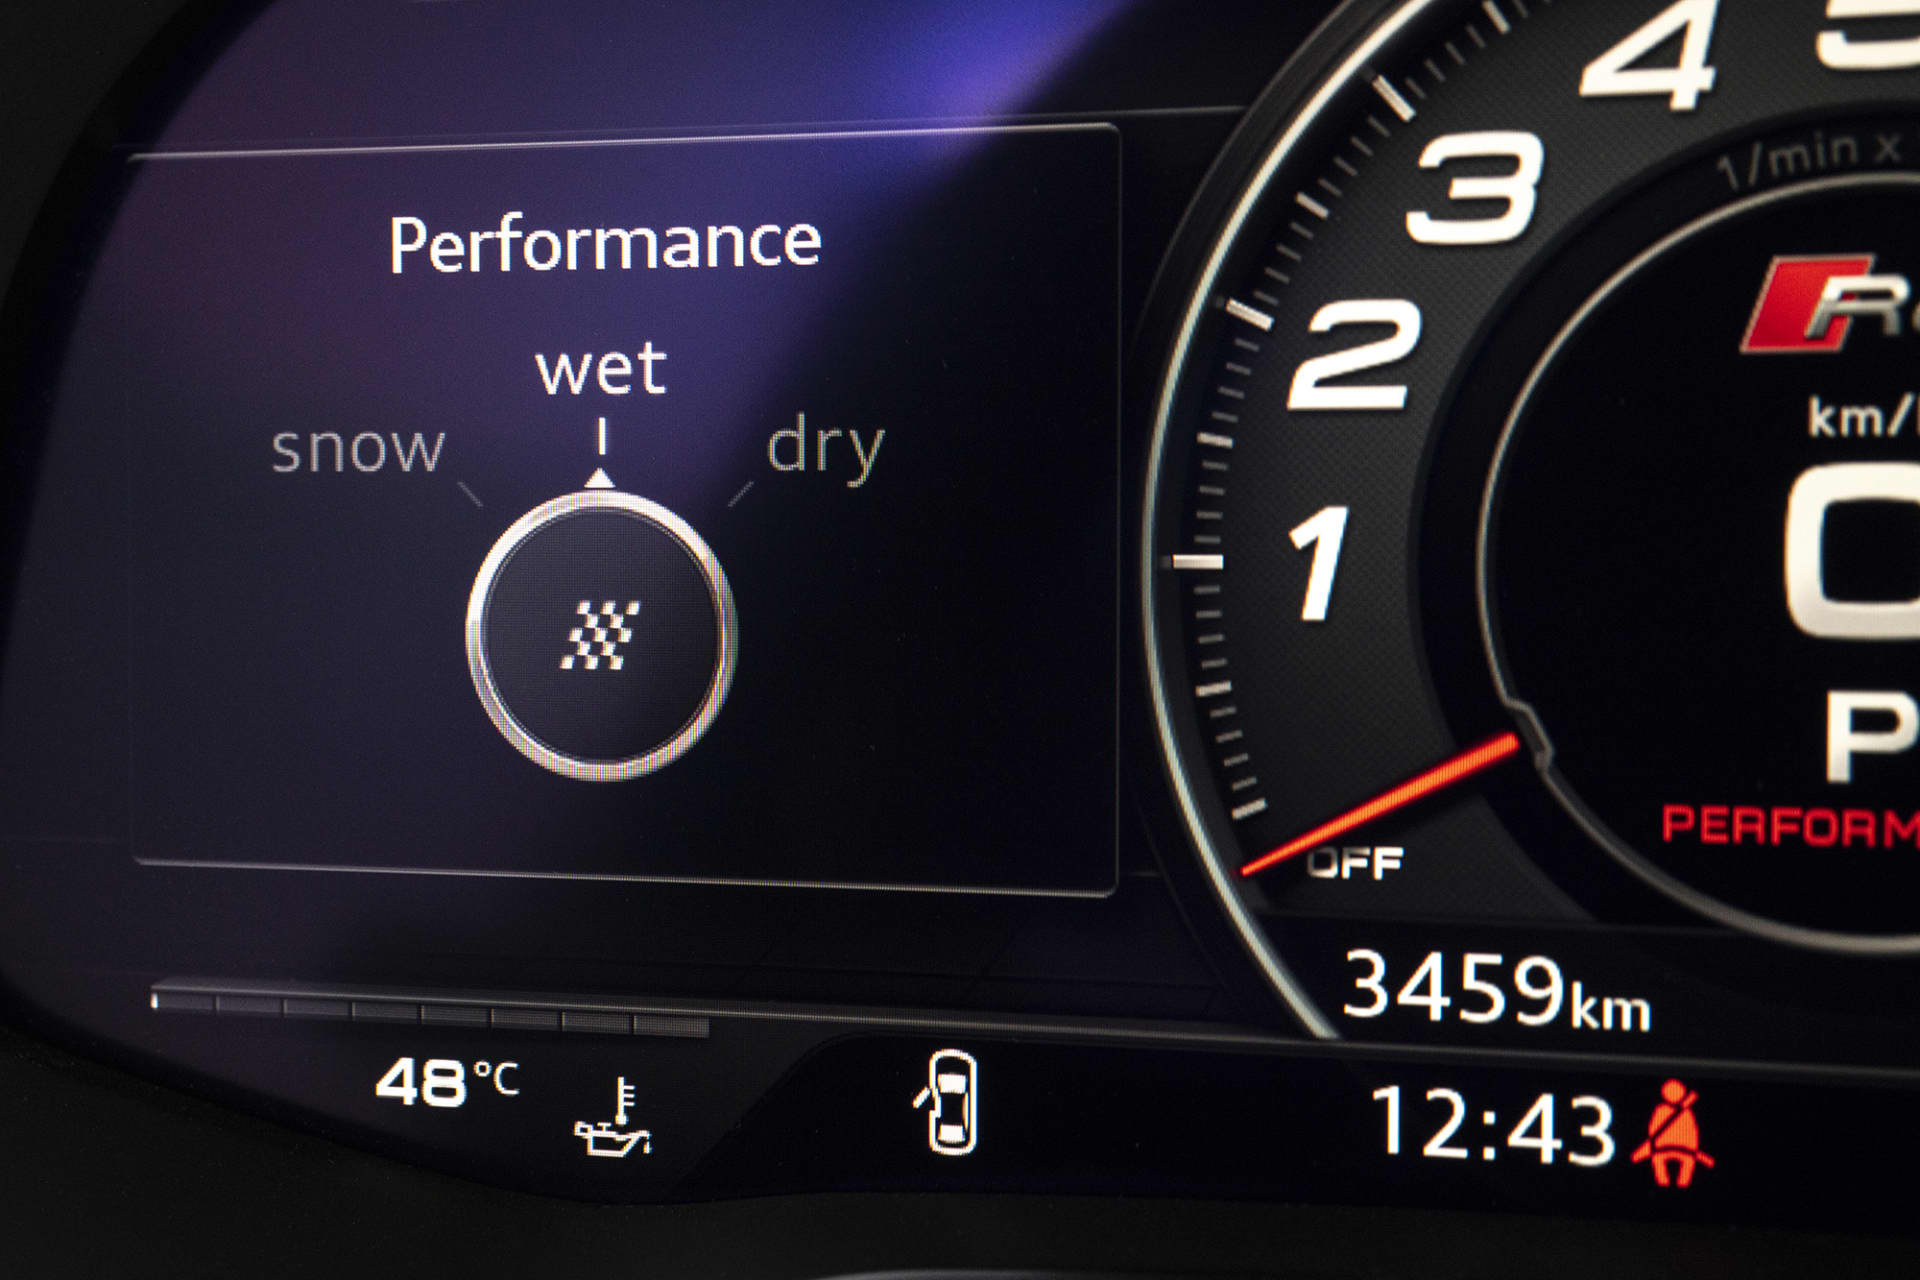 """Nowadays, the dashboard is fully digital in the Audi R8. The different modes for the Performance ESP system are also new - """"snow"""", """"wet"""" and """"dry""""."""